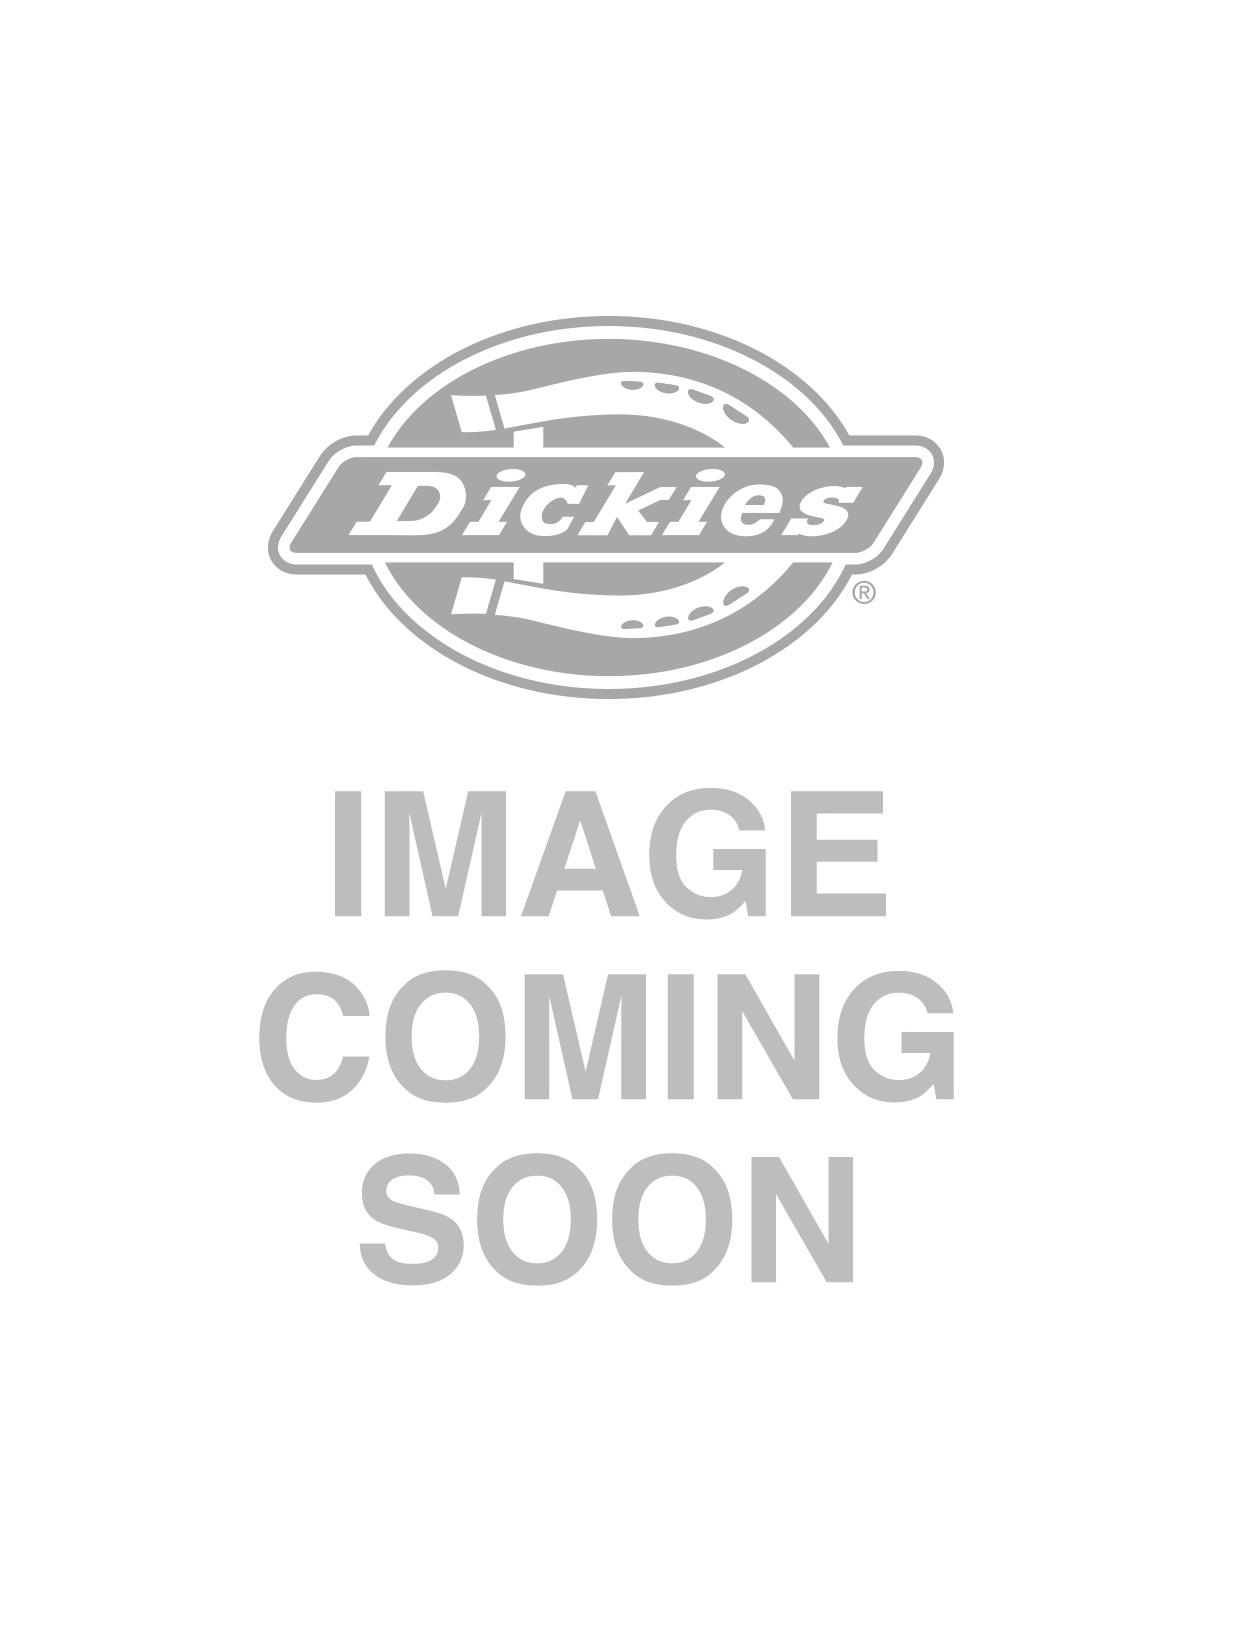 Dickies Finley T-Shirt